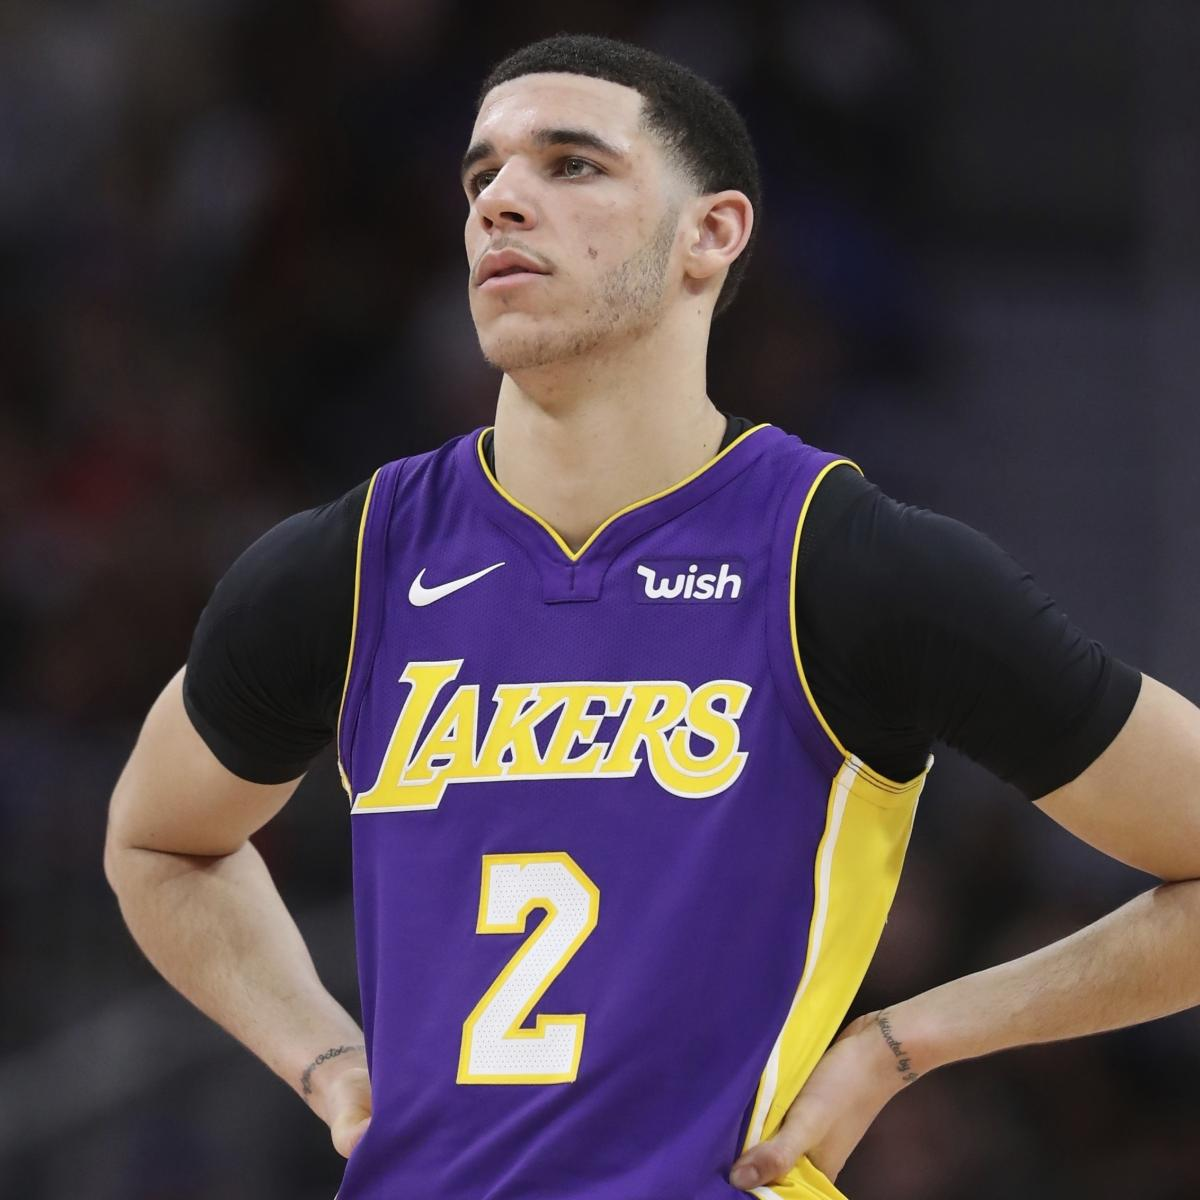 Lakers News: Lonzo Ball Won't Be a Full Participant in Camp Due to Knee Injury